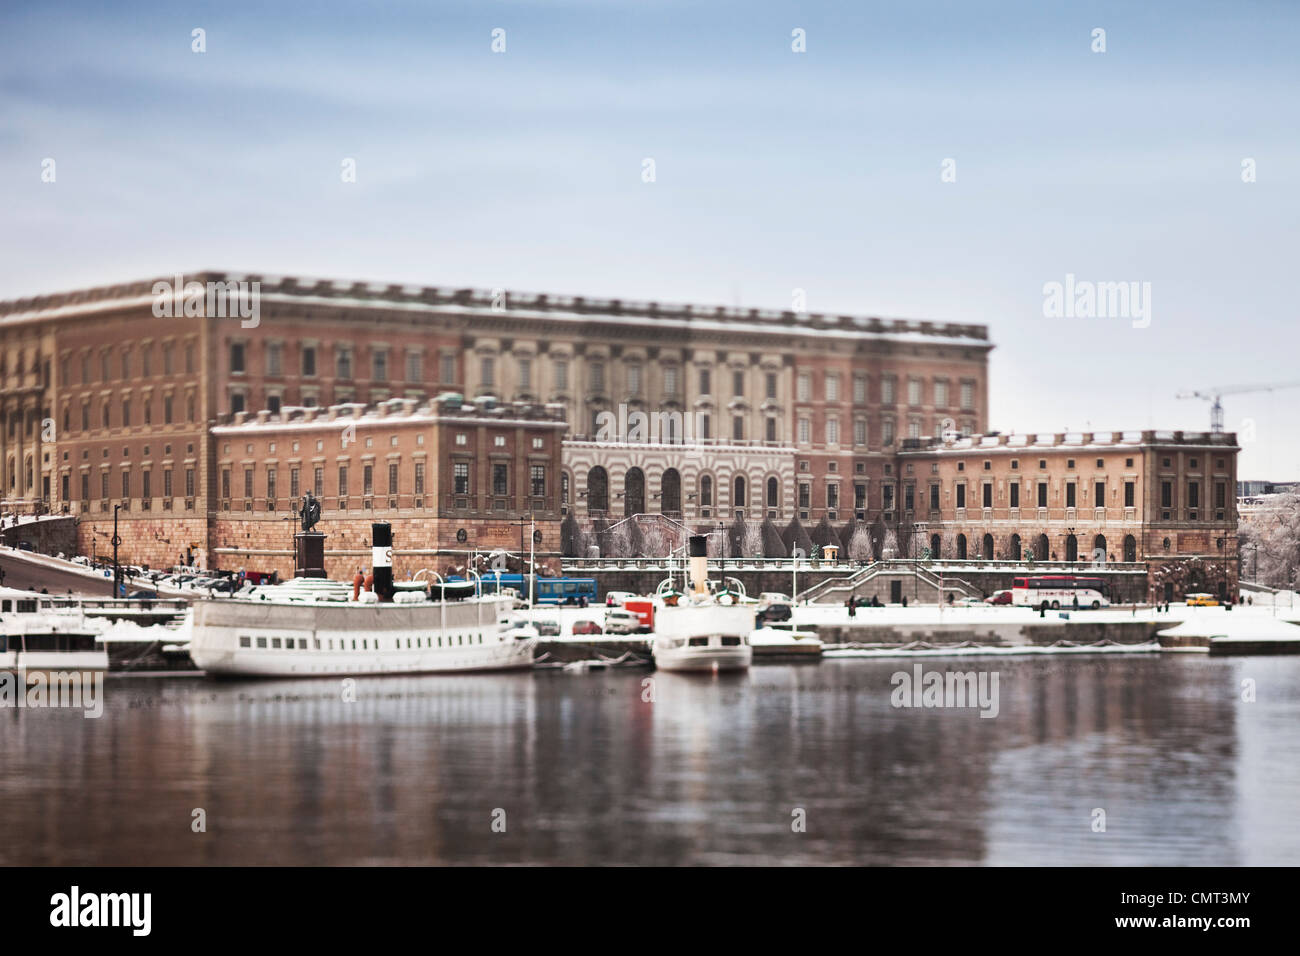 Beautiful view of Stockholm Royal Palace and nautical vessel against clear sky - Stock Image